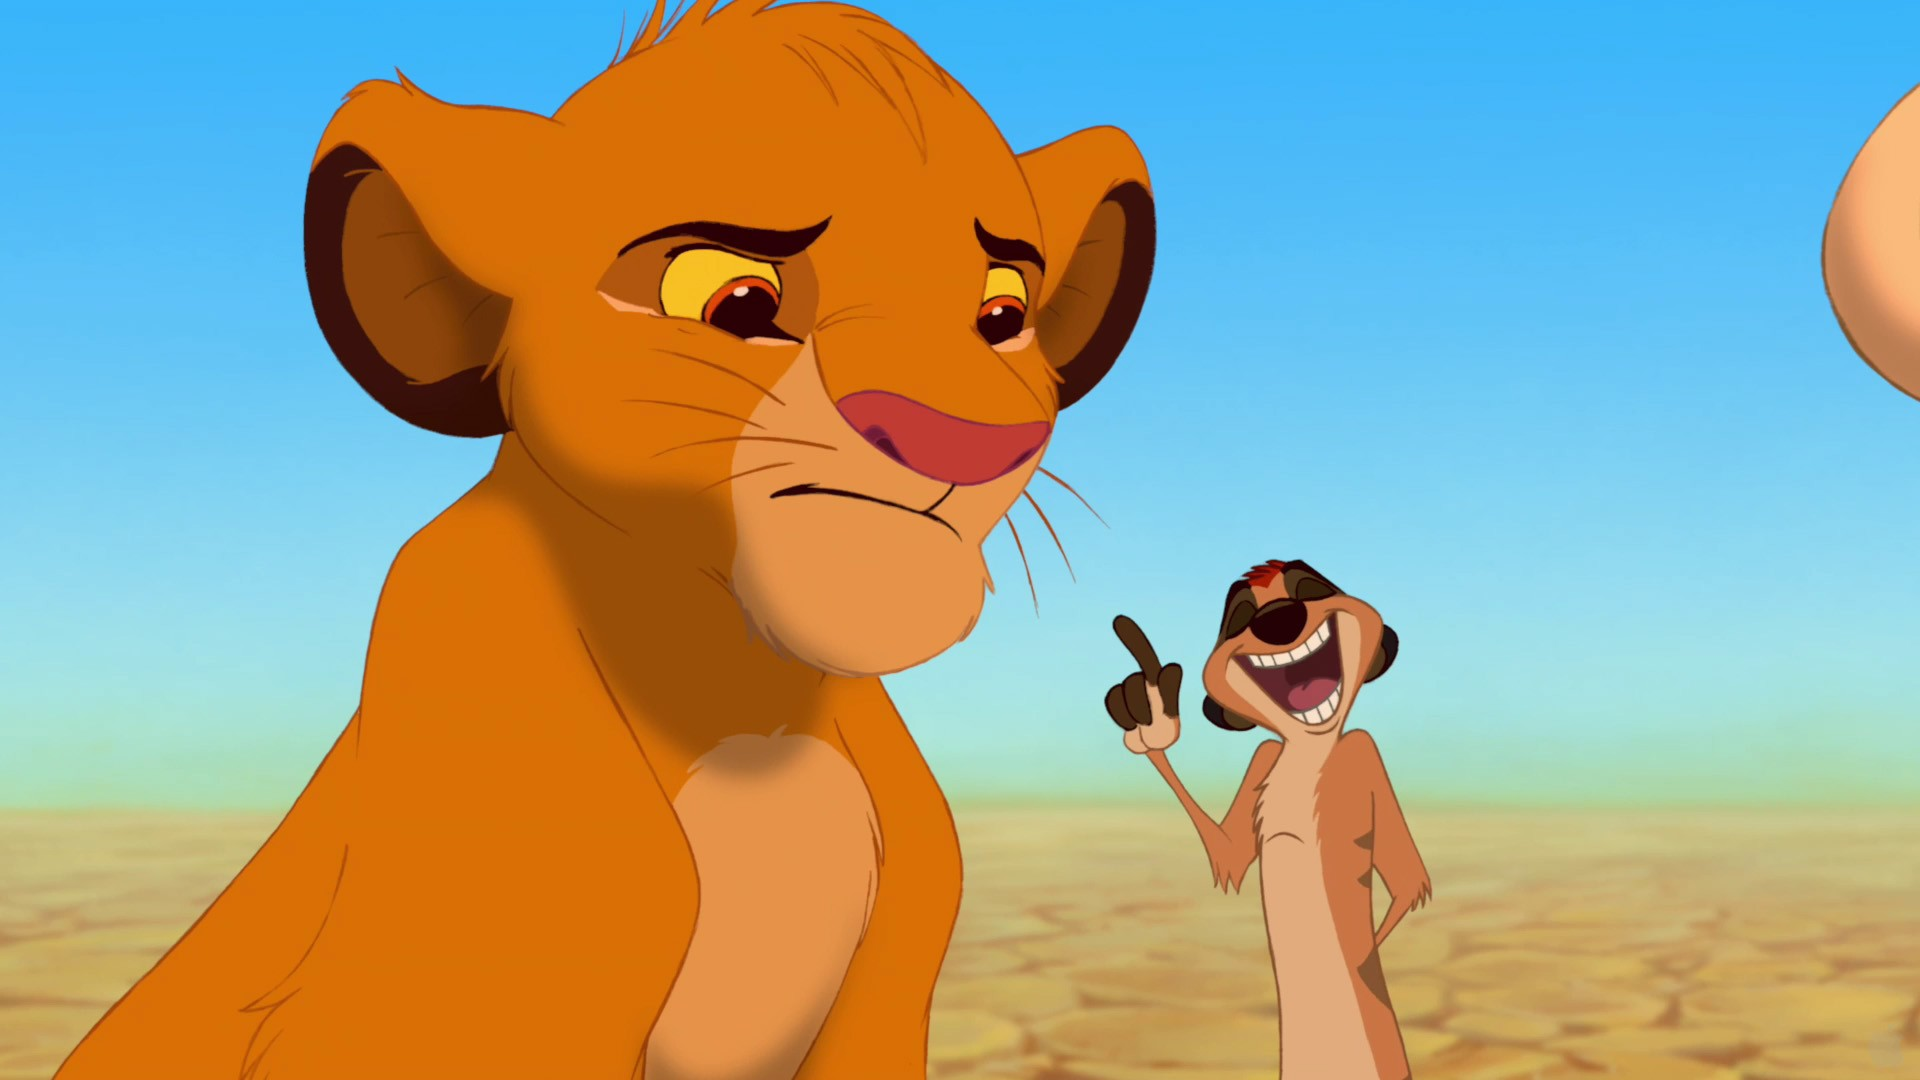 Wallpaper abyss everything the lion king movie the lion king 338901